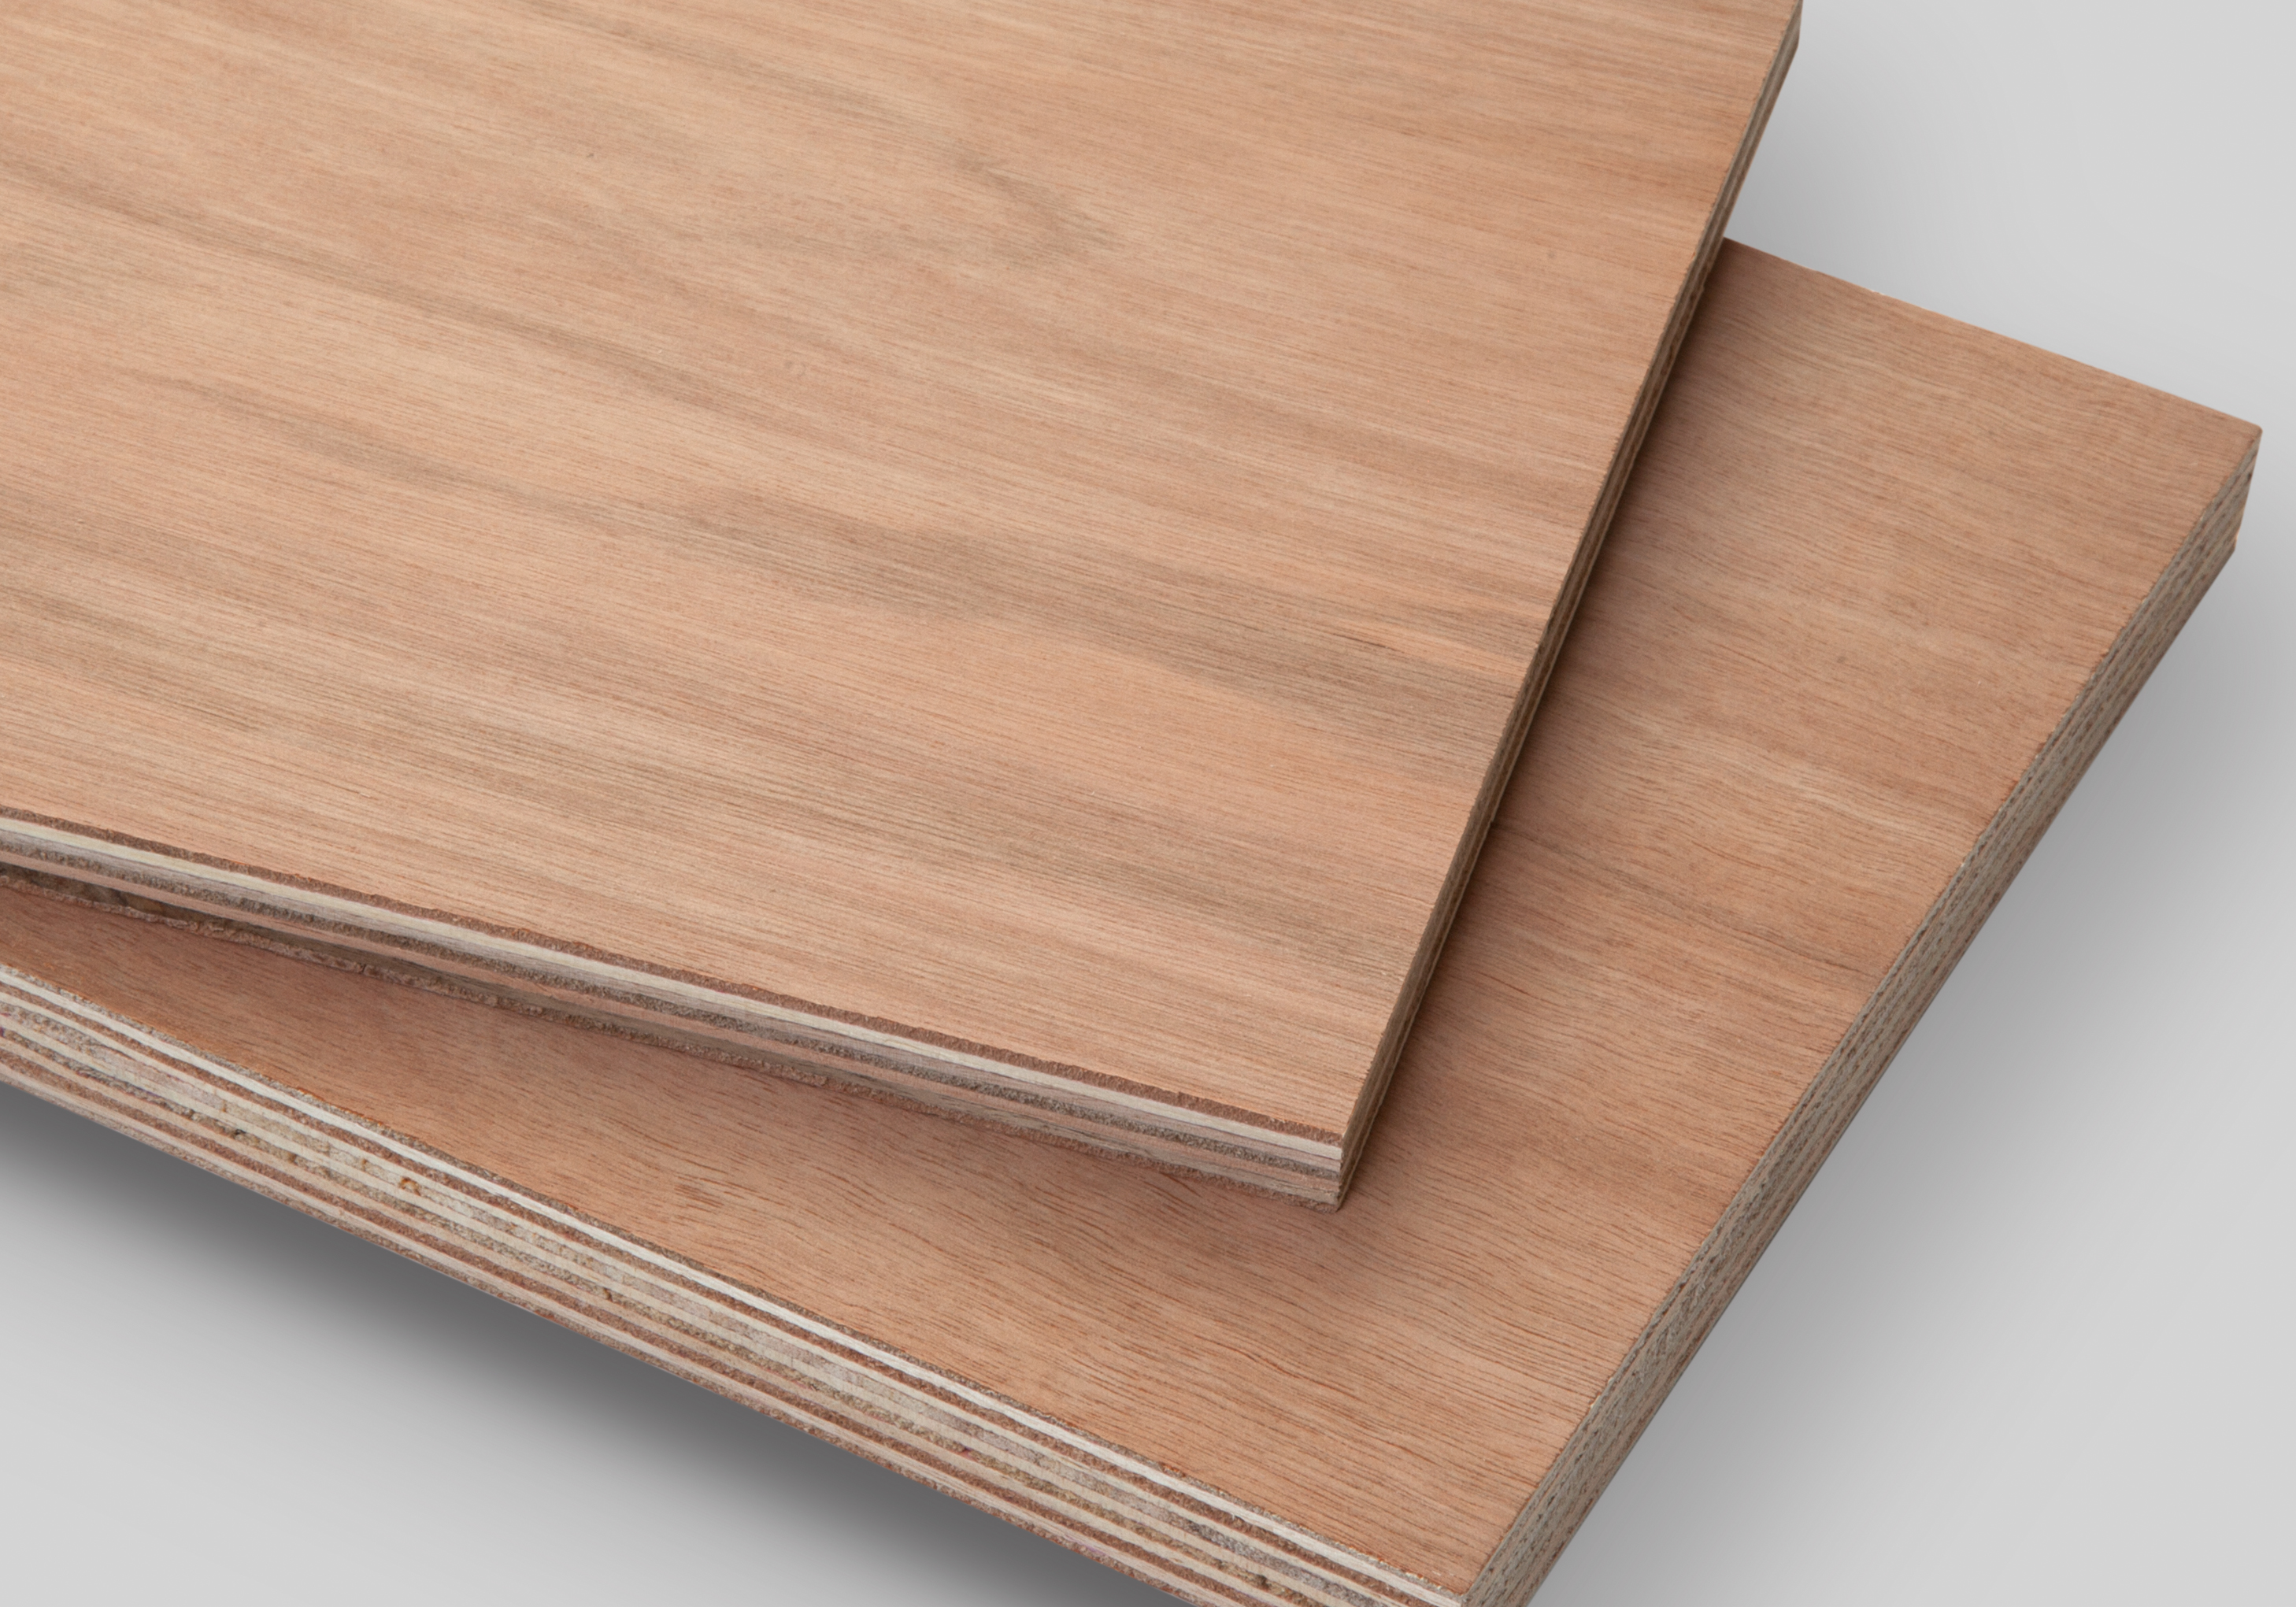 Tropical Hardwood Plywood Falcon Panel Products